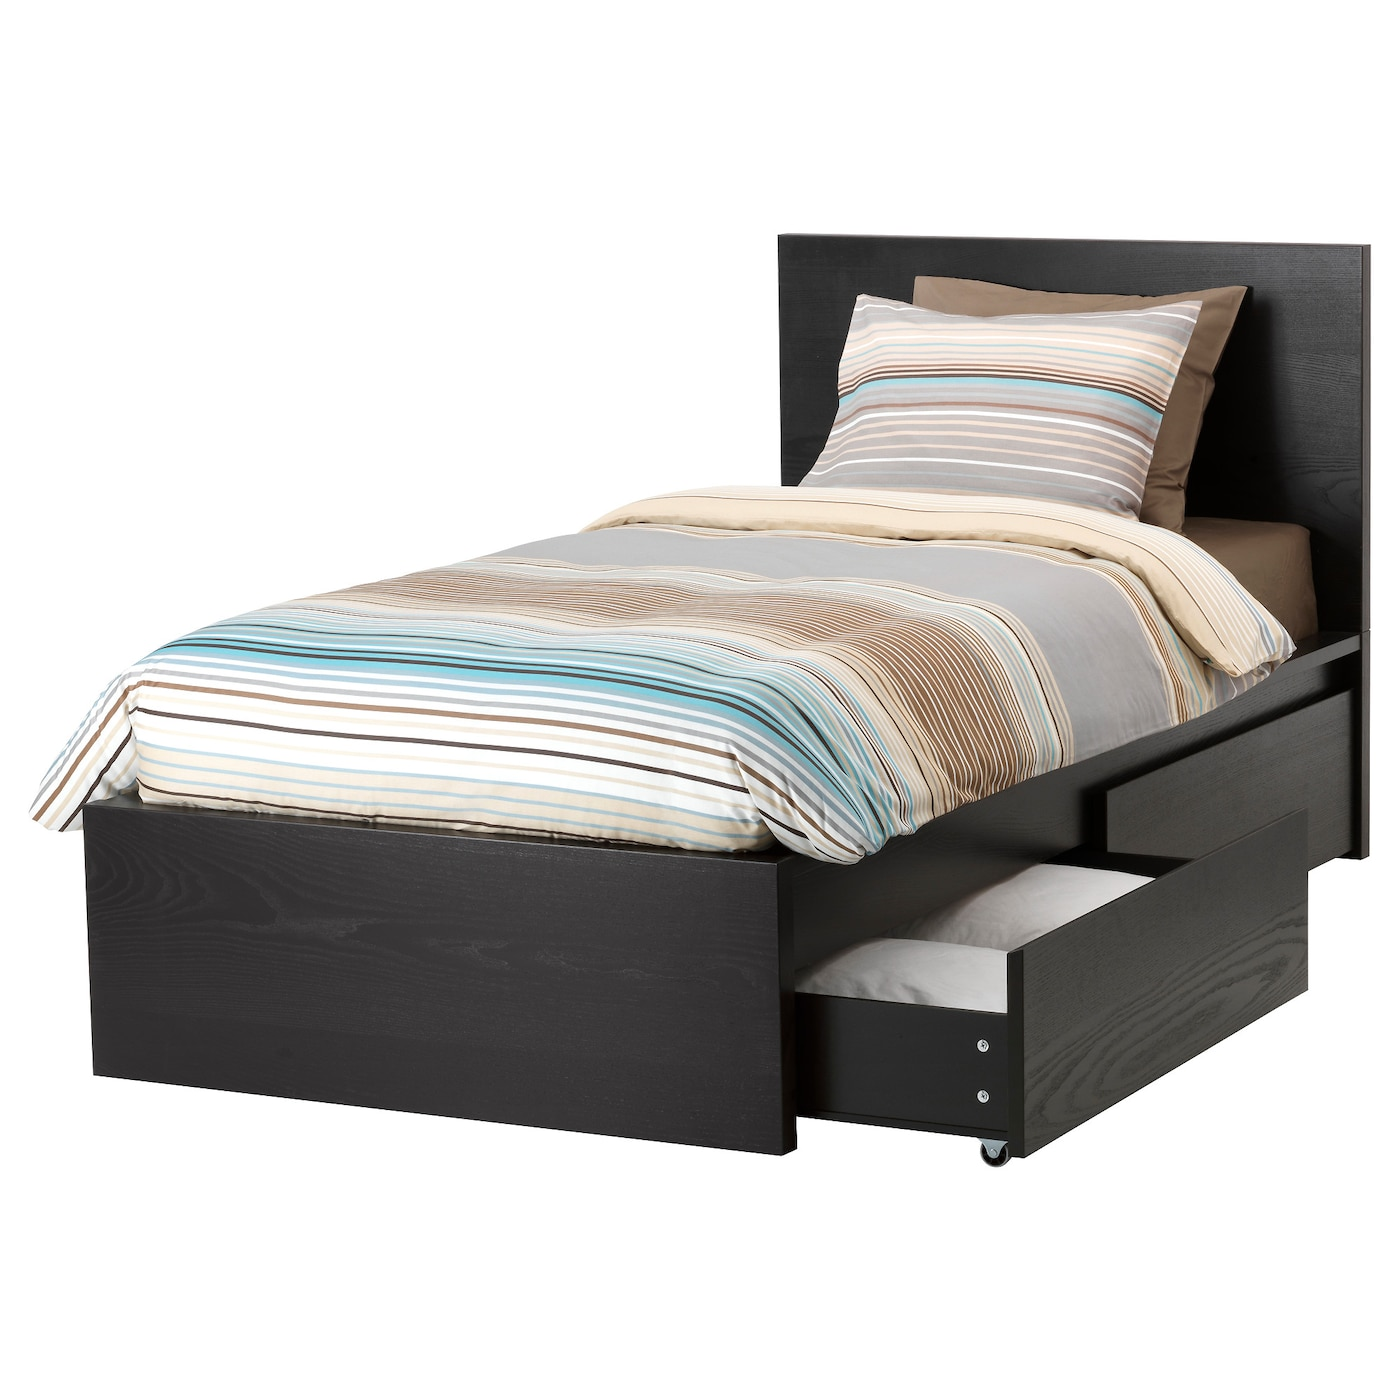 malm bed frame high w 2 storage boxes black brown lur y